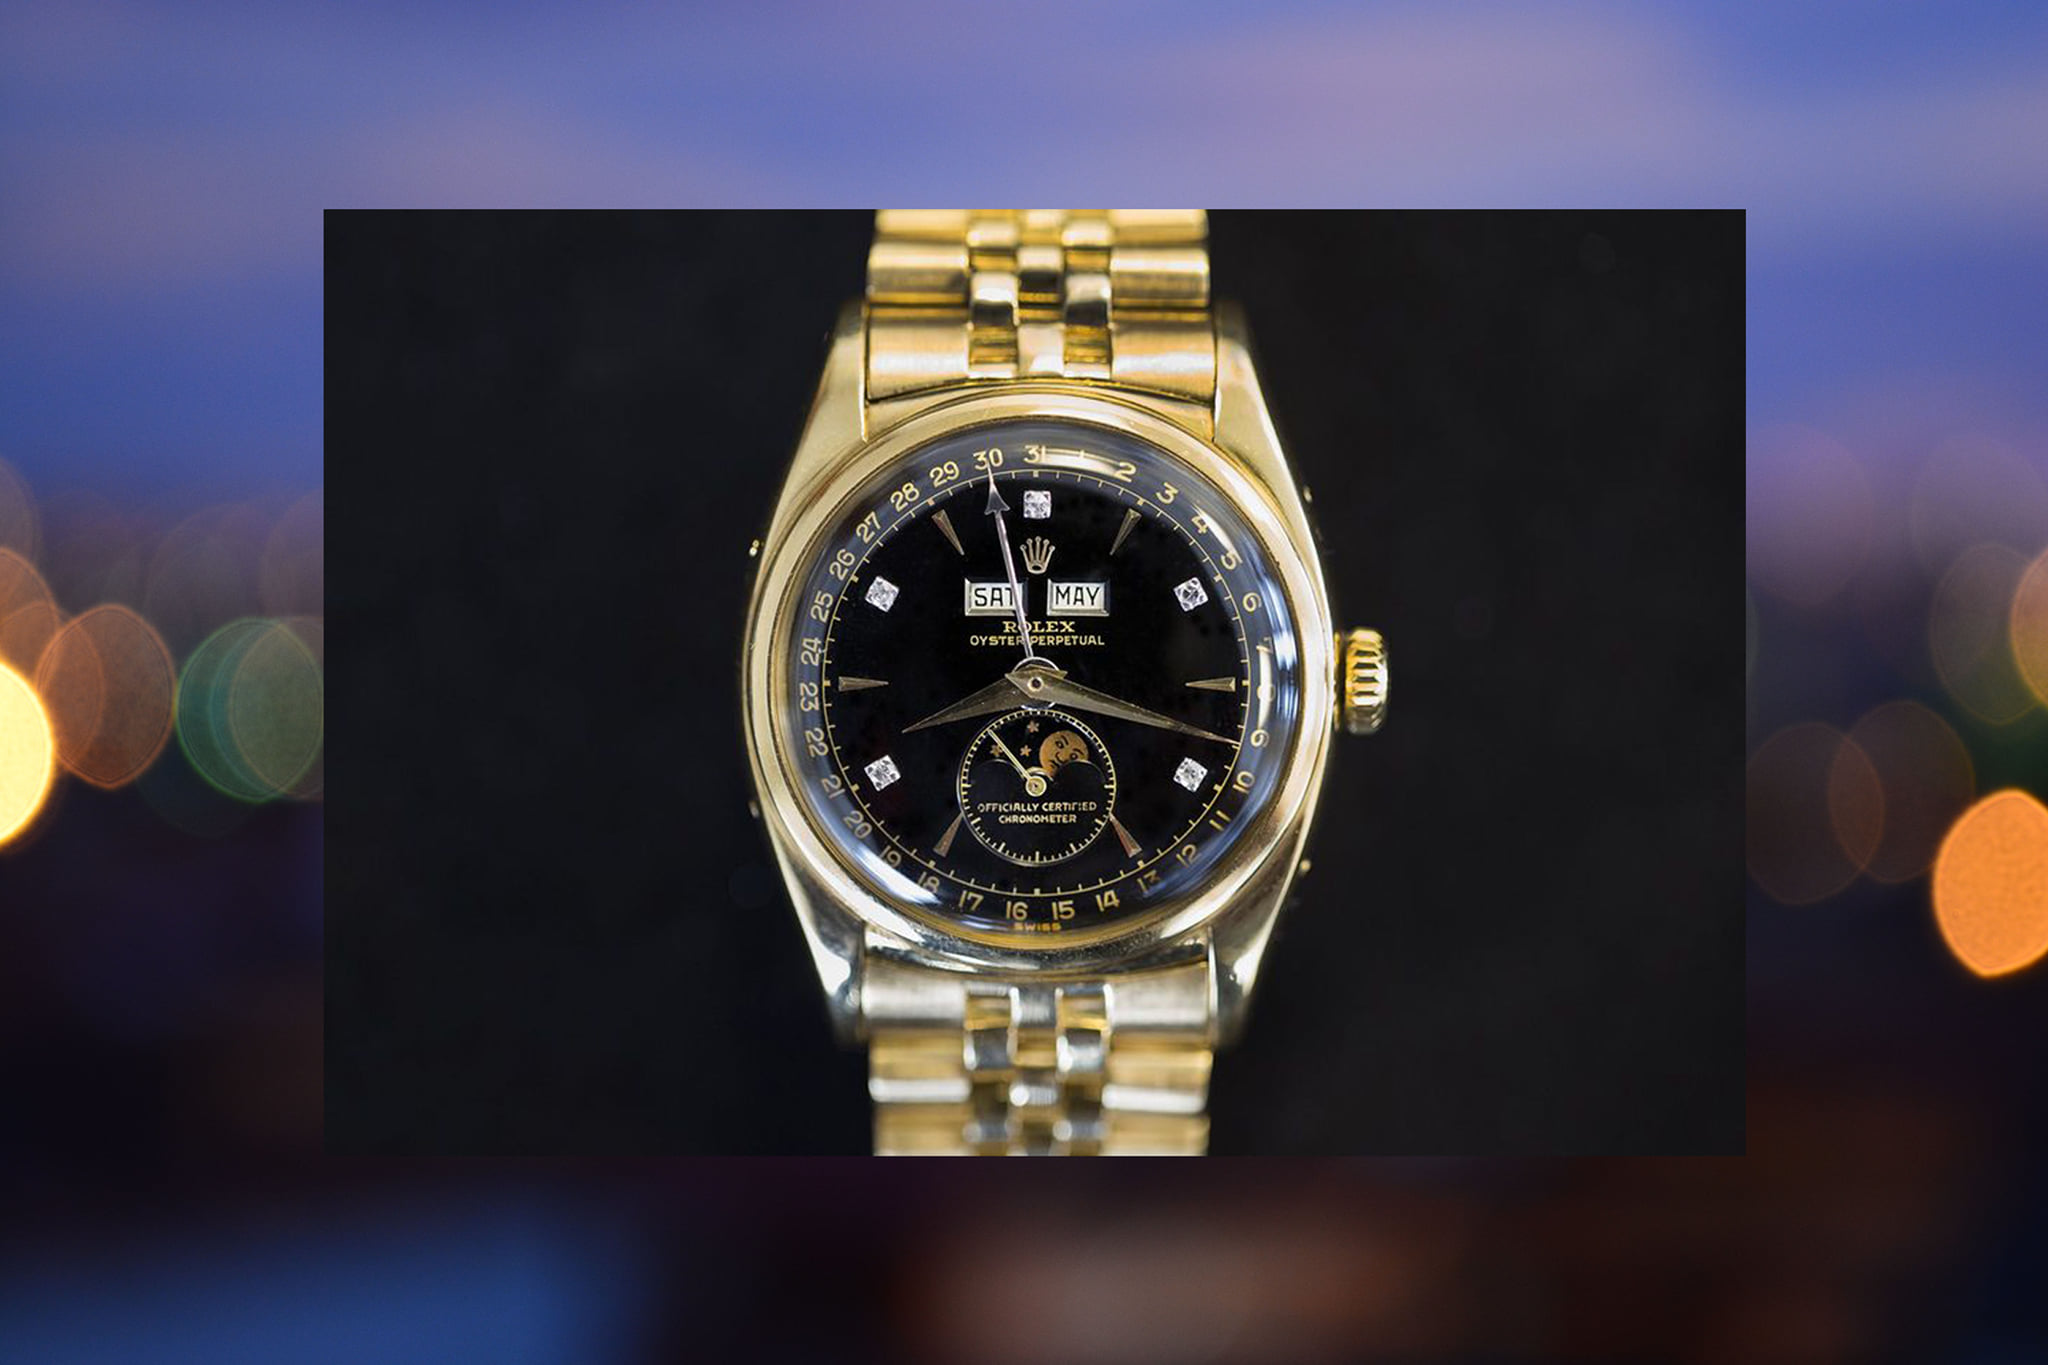 Where Are Rolex Watches The Cheapest?